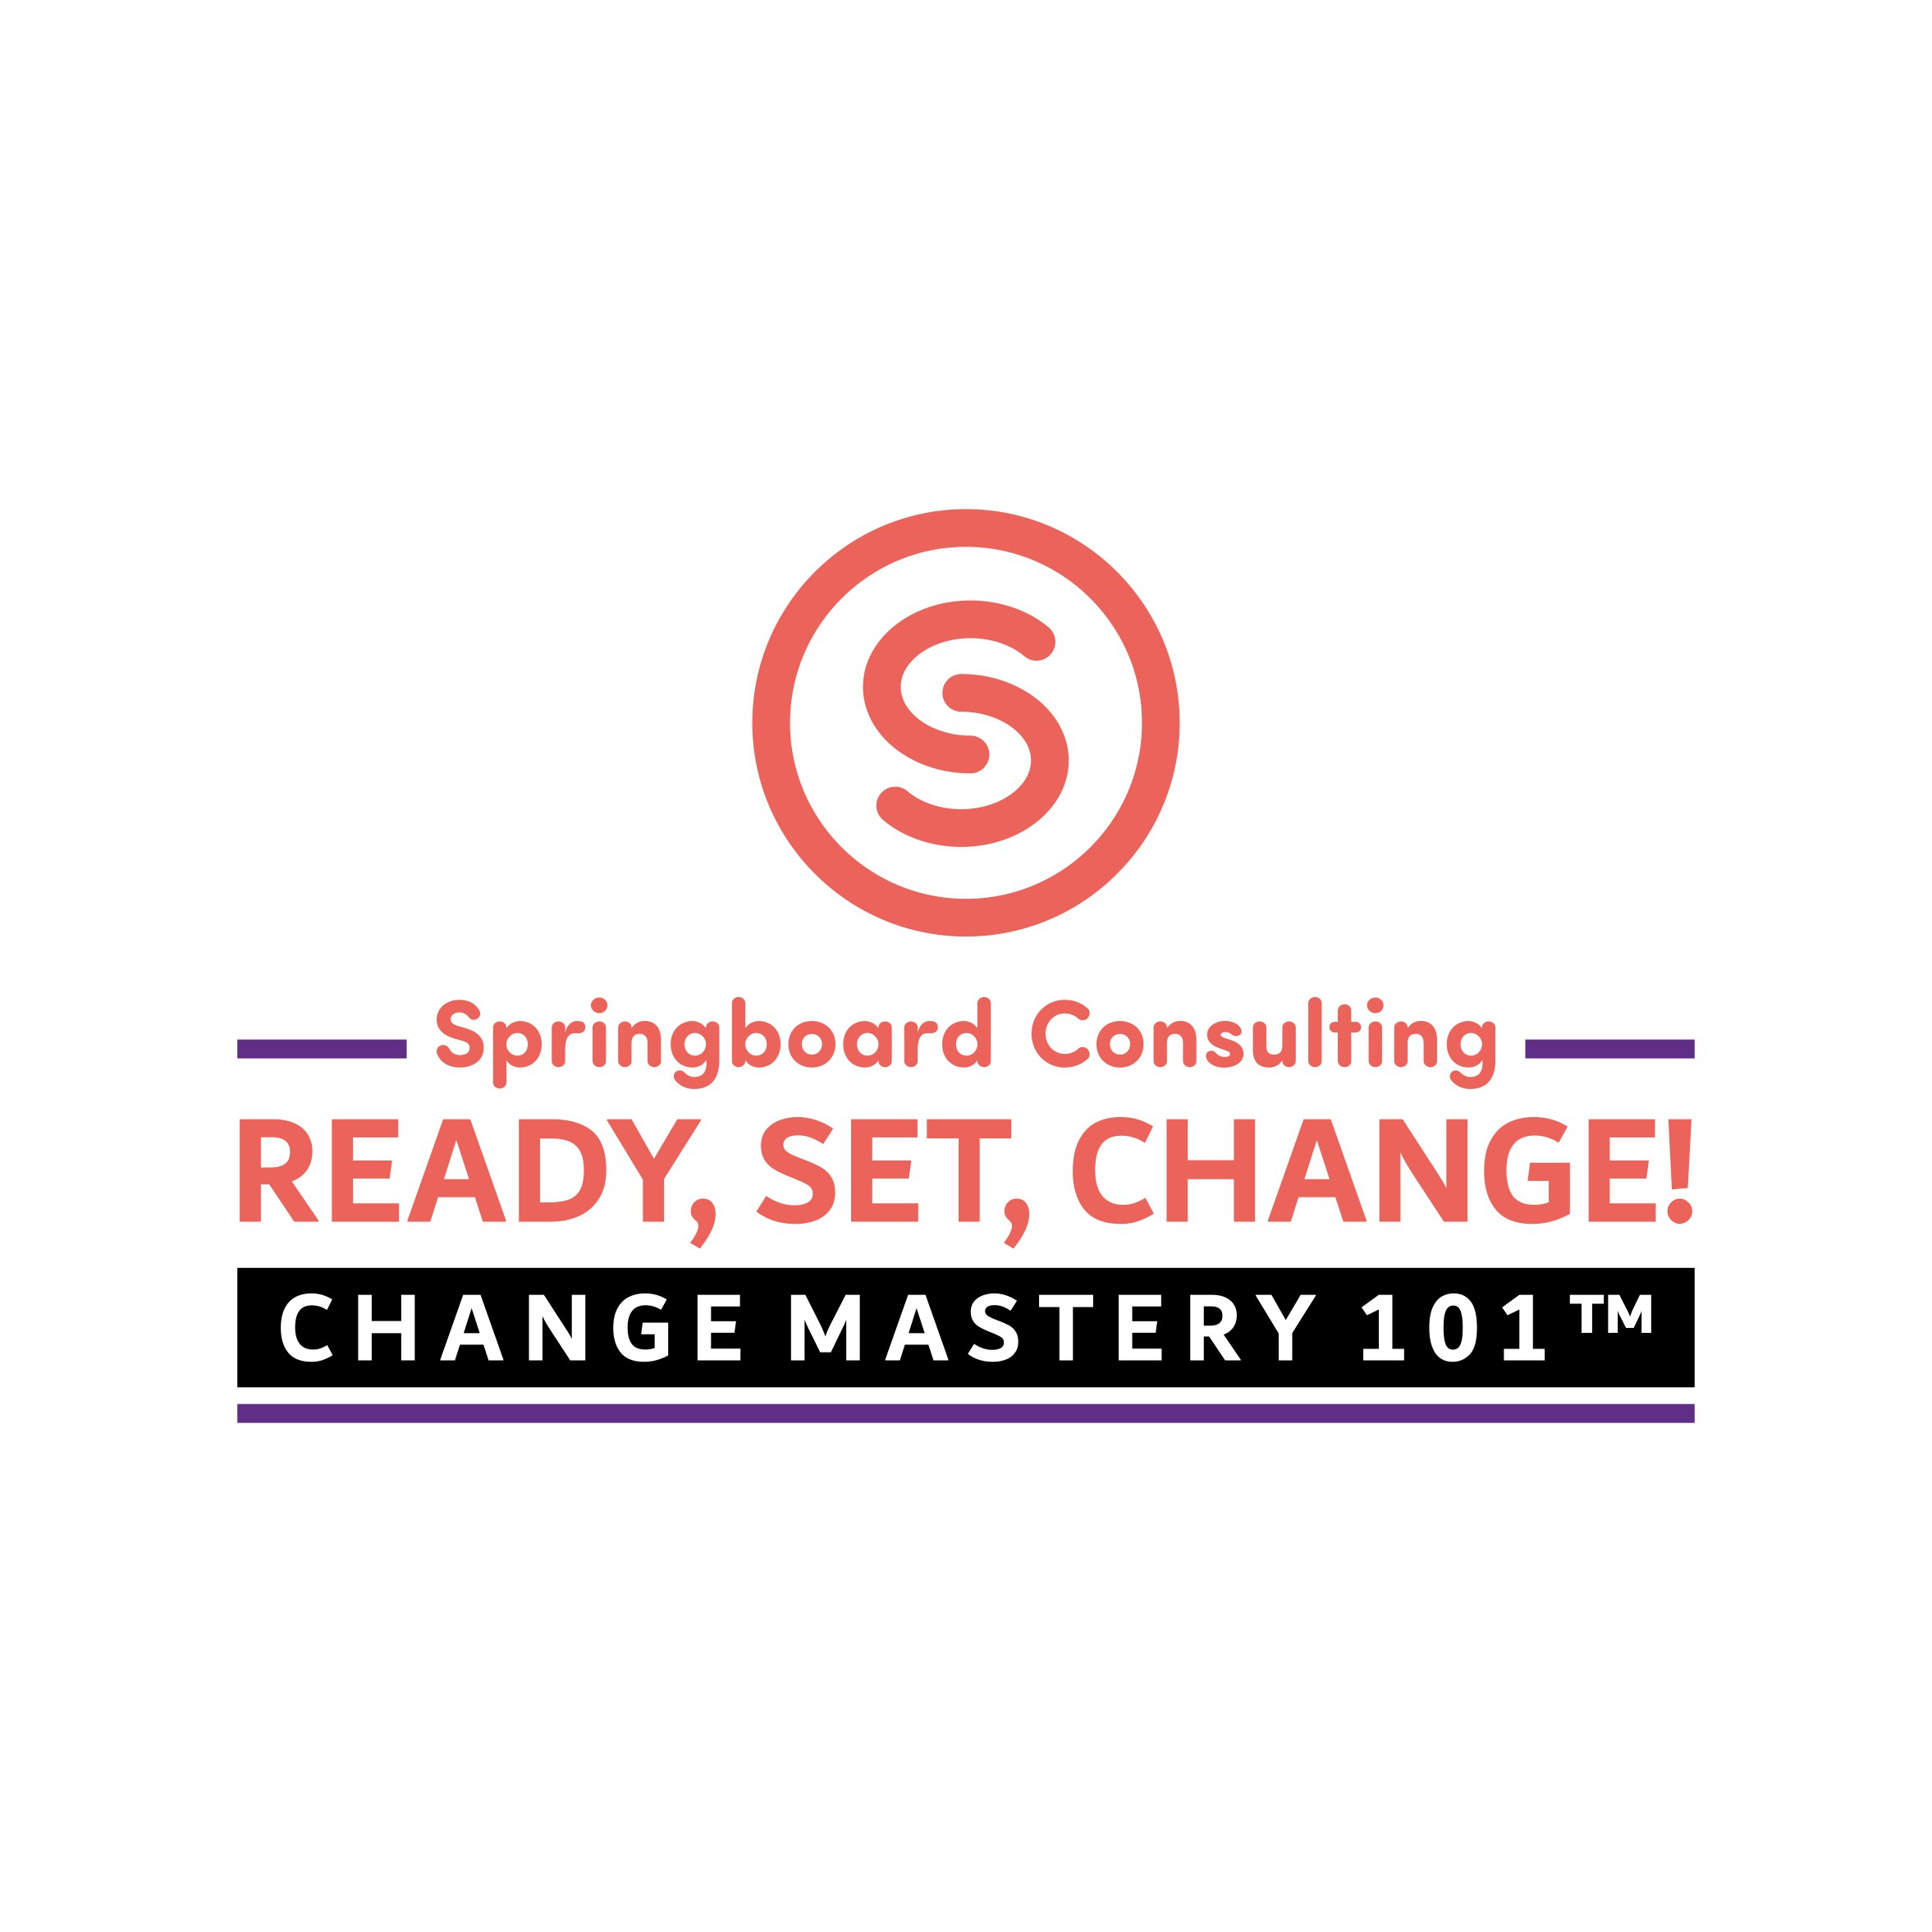 Need to combine logo with NEW Change Management training logo